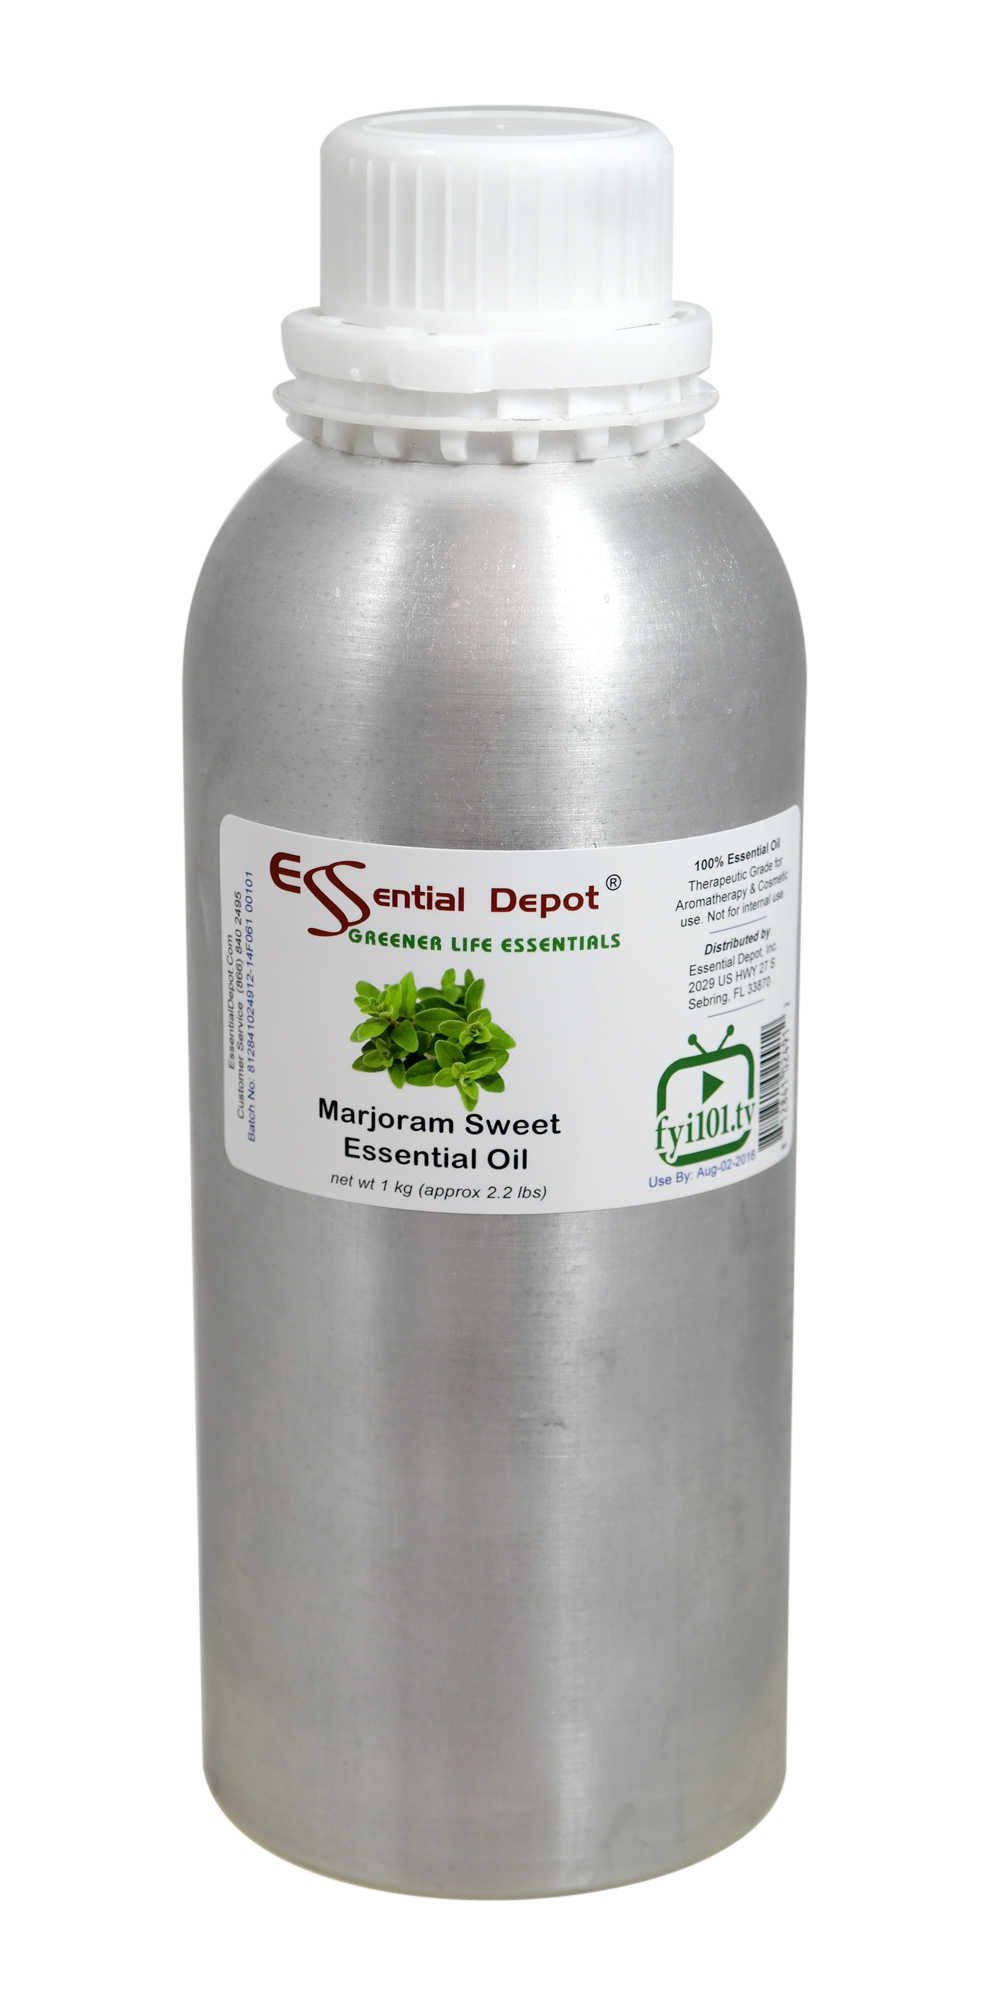 Marjoram Essential Oil - 1 kg. - Approx 2.2 lbs. - FREE US SHIPPING